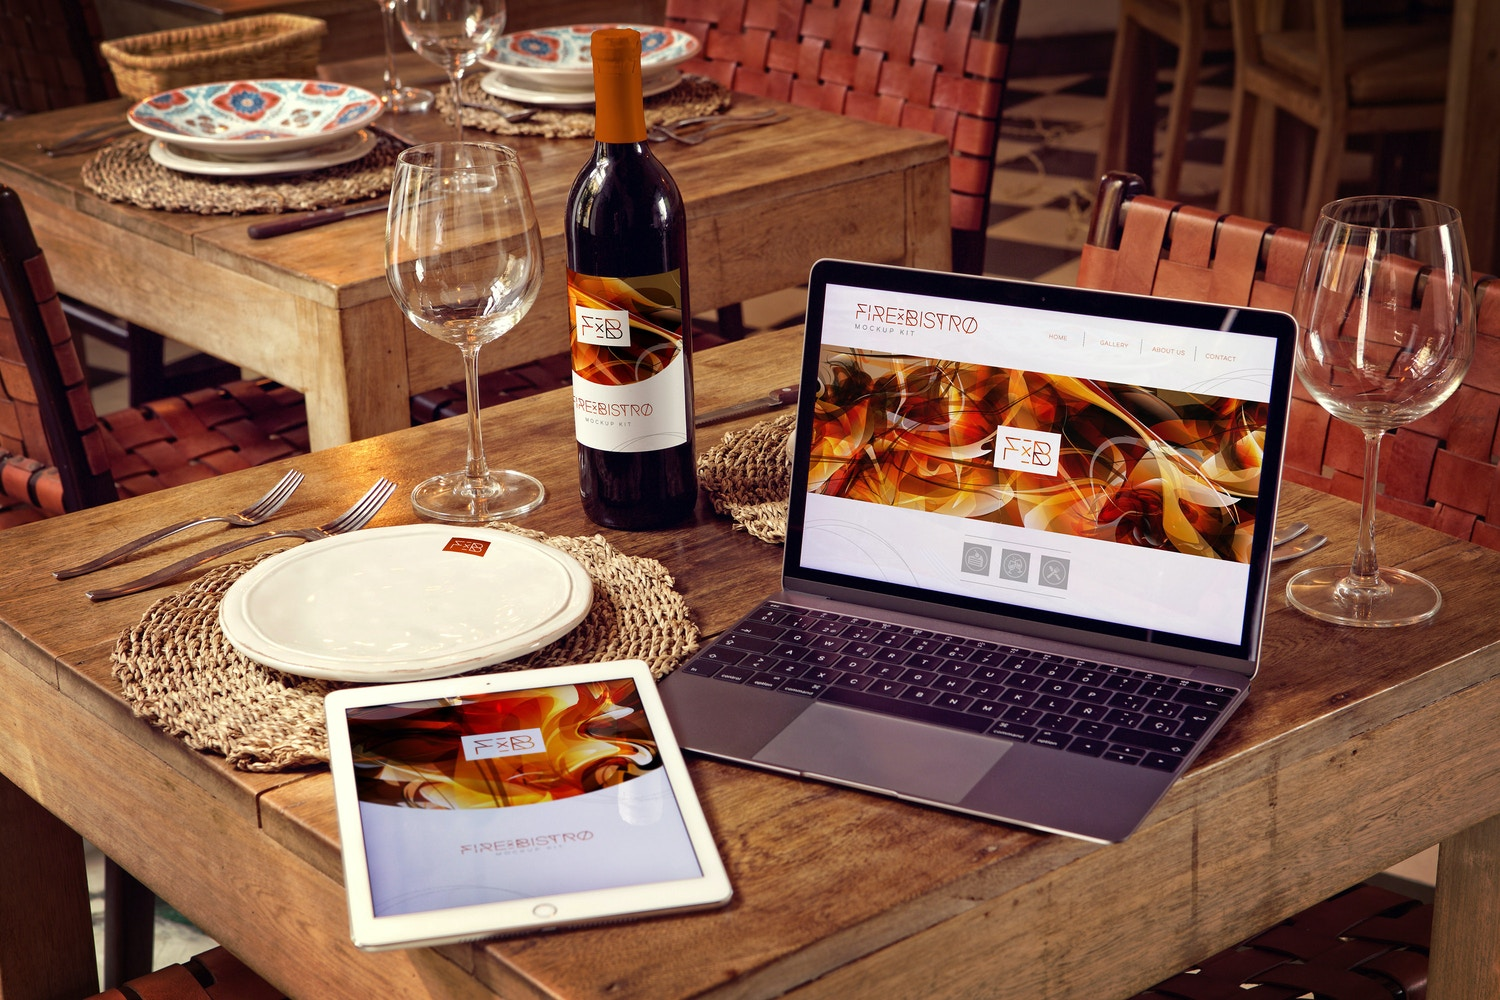 Wine Bottle, iPad Air 2, Macbook Mockup by 4to Pixel on Original Mockups